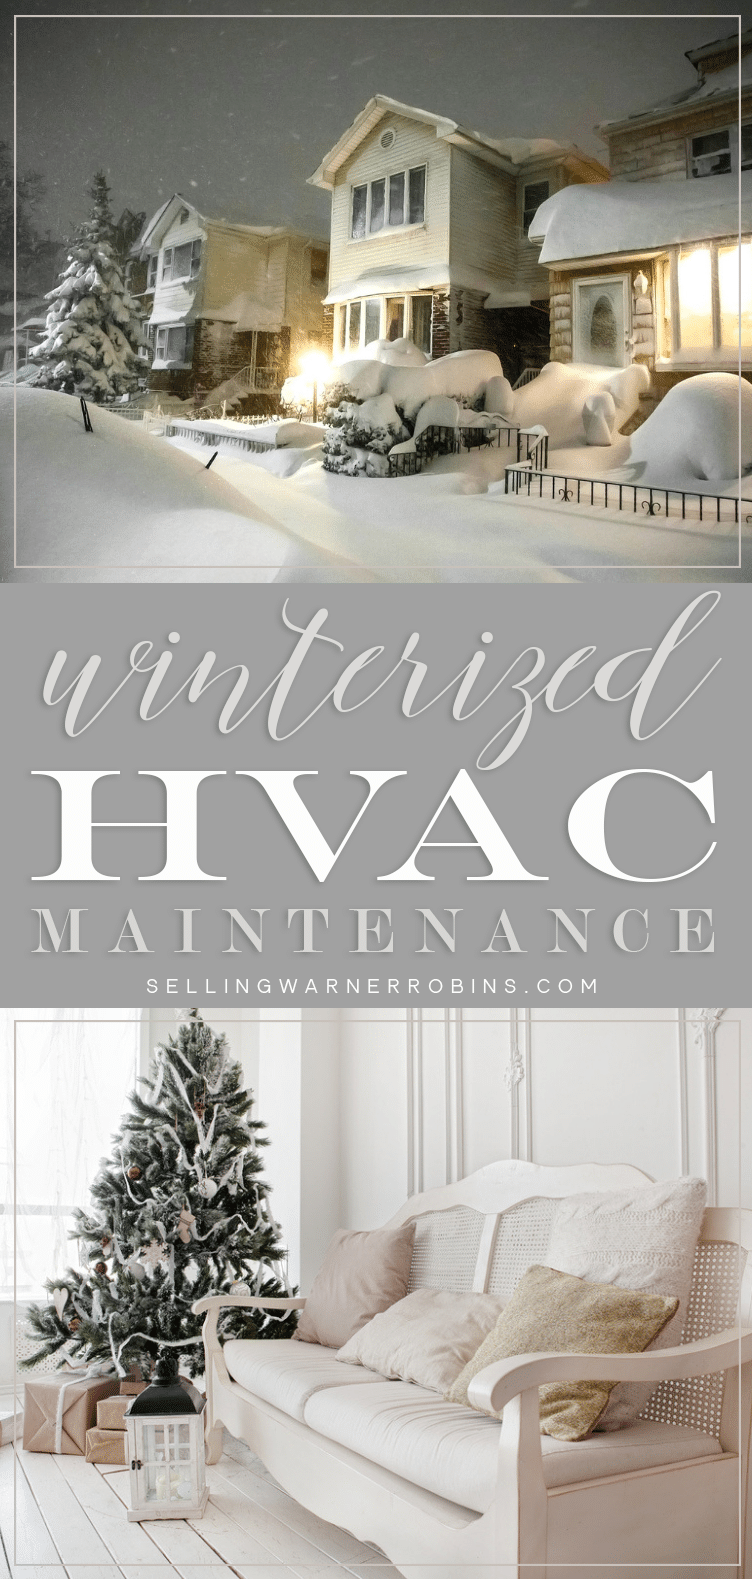 Winterized HVAC Maintenance